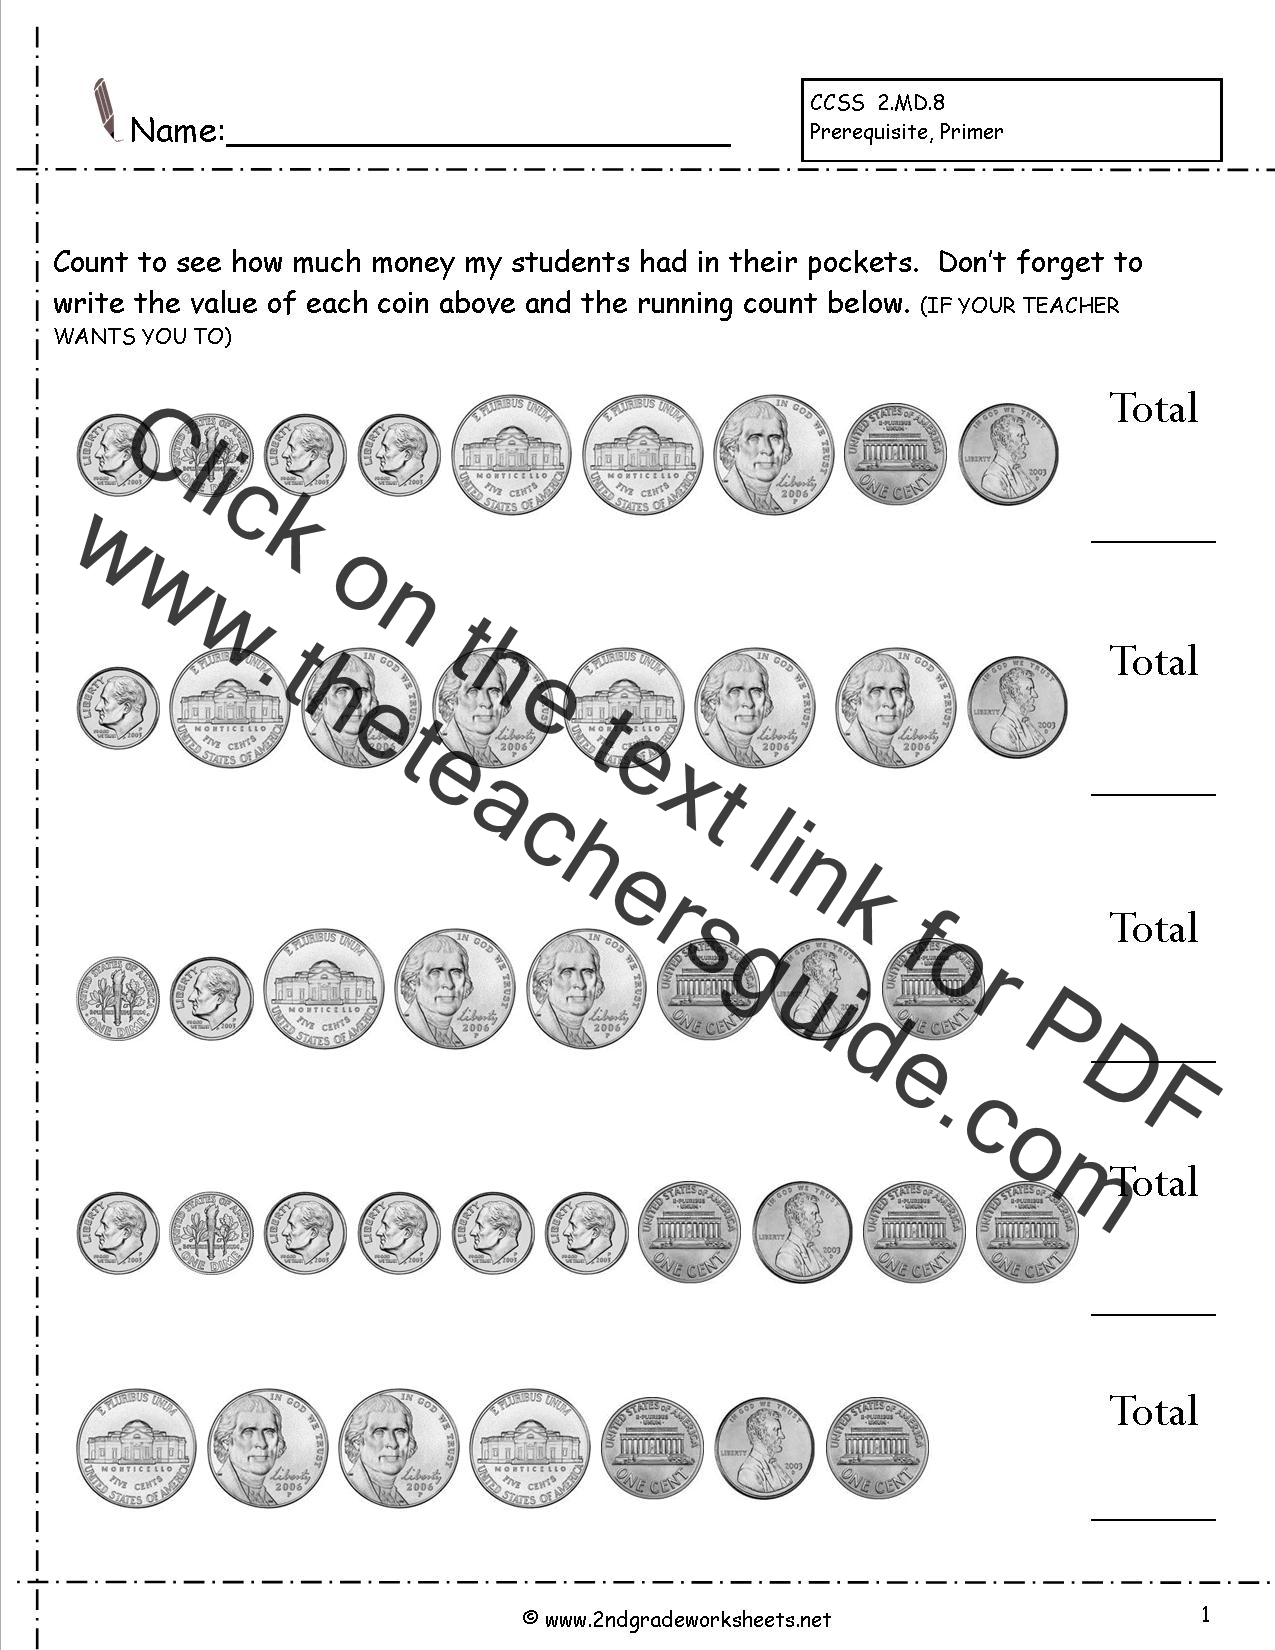 math worksheet : counting coins and money worksheets and printouts : 2nd Grade Money Math Worksheets